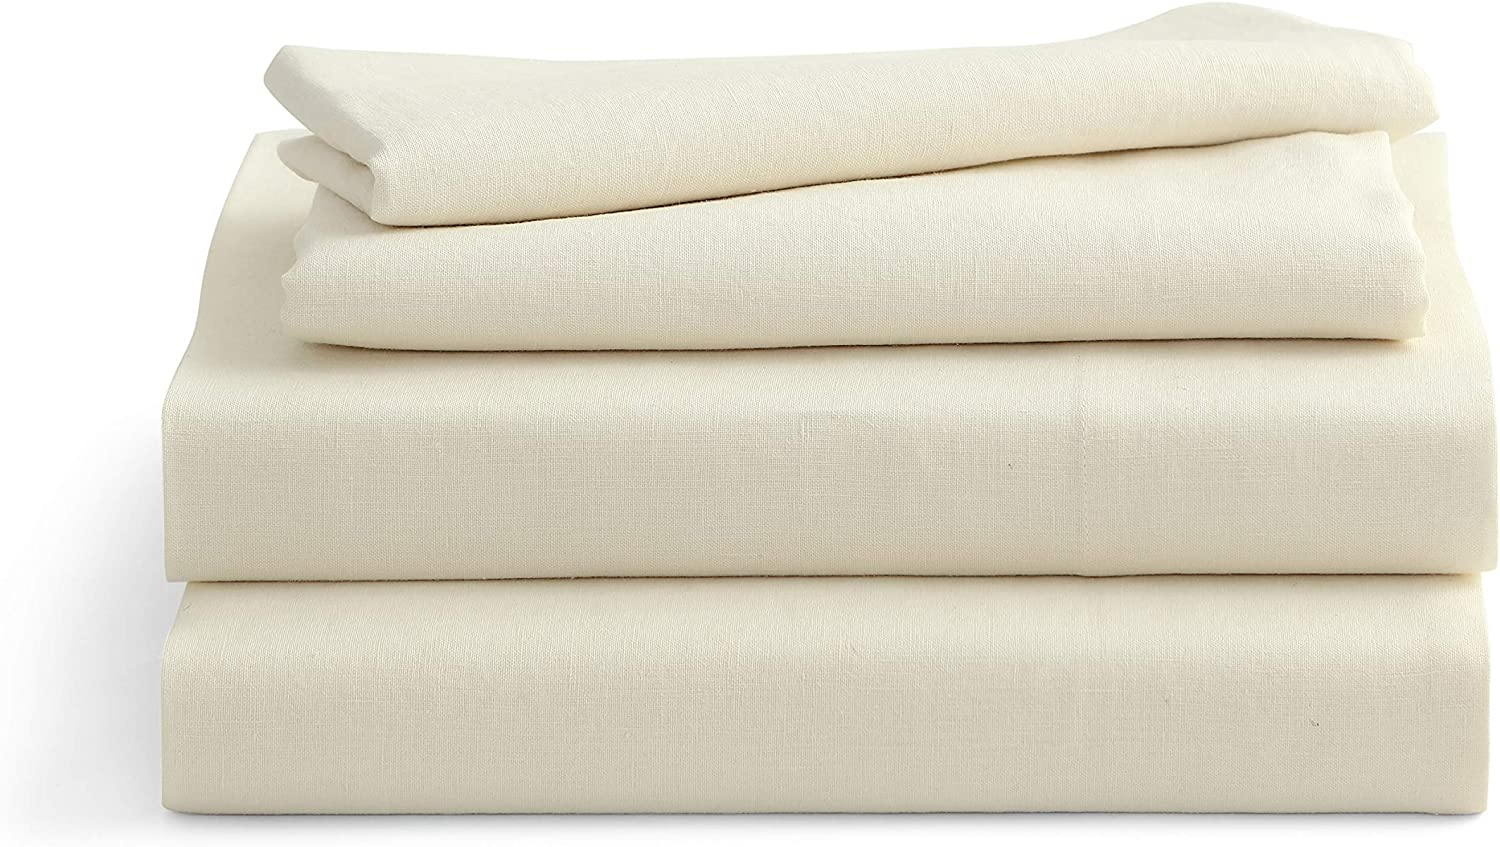 Prewashed /& Oeko-TEX Certified Ivory Bedding Full 2 Pillowcases Flat Sheet Solino Home 100/% Pure Linen Belgian Bed Sheet Set Fitted Sheet 4 Piece